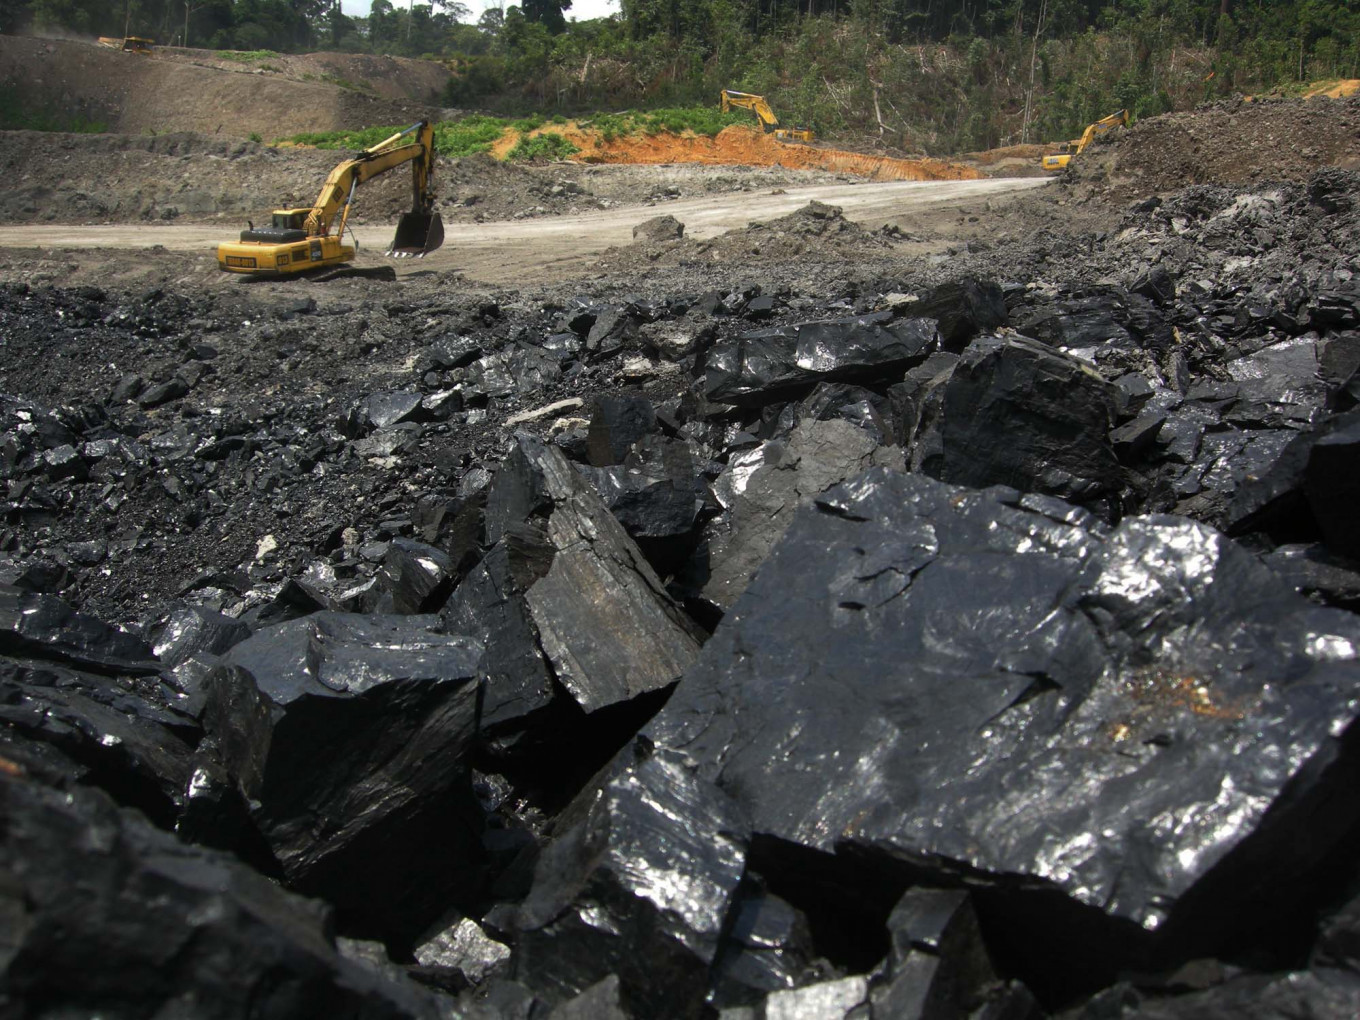 Coal giant Bumi secures 10-year extension at S. Kalimantan mines